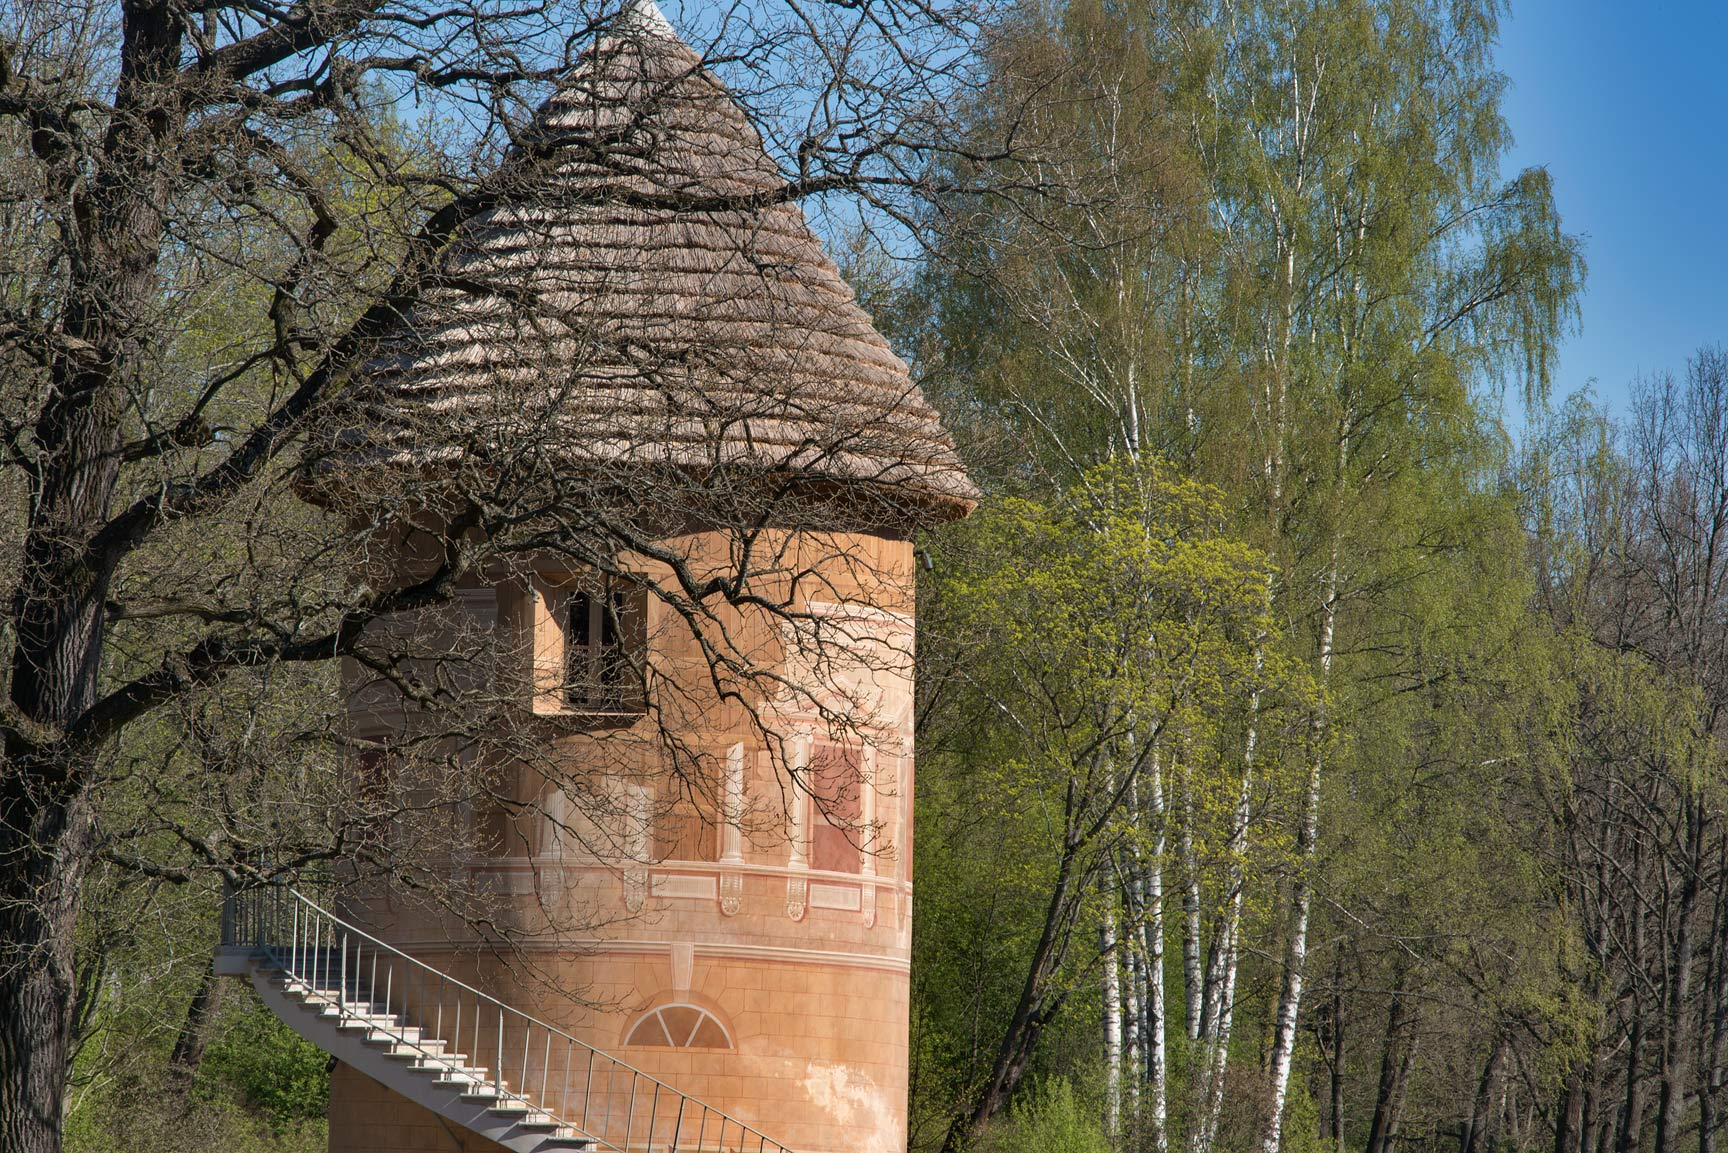 Pil Bashnya Tower in Pavlovsk Park. Pavlovsk, suburb of St.Petersburg, Russia